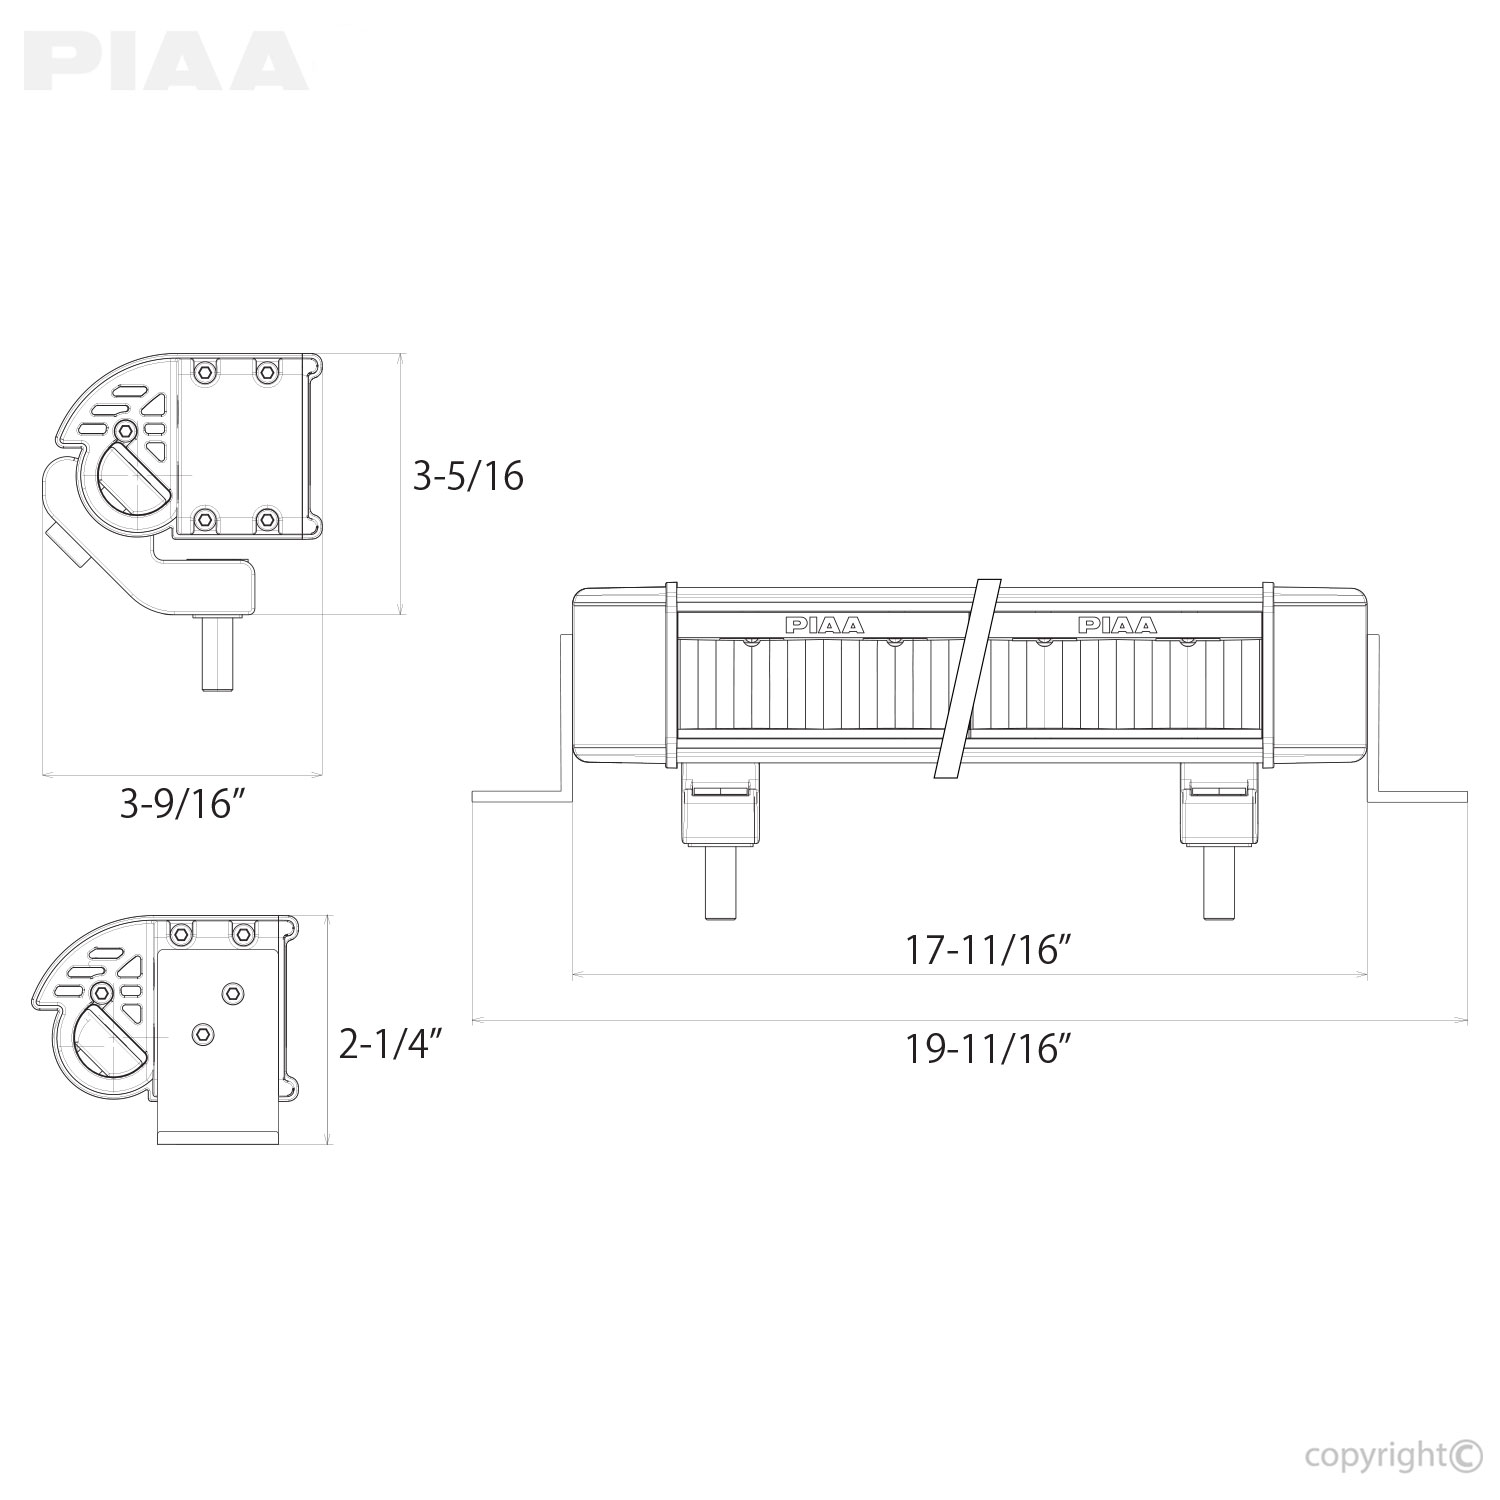 Piaa Wiring Diagram Manual Guide Sony Bmw Harness 1100 Lamp Odicis 520